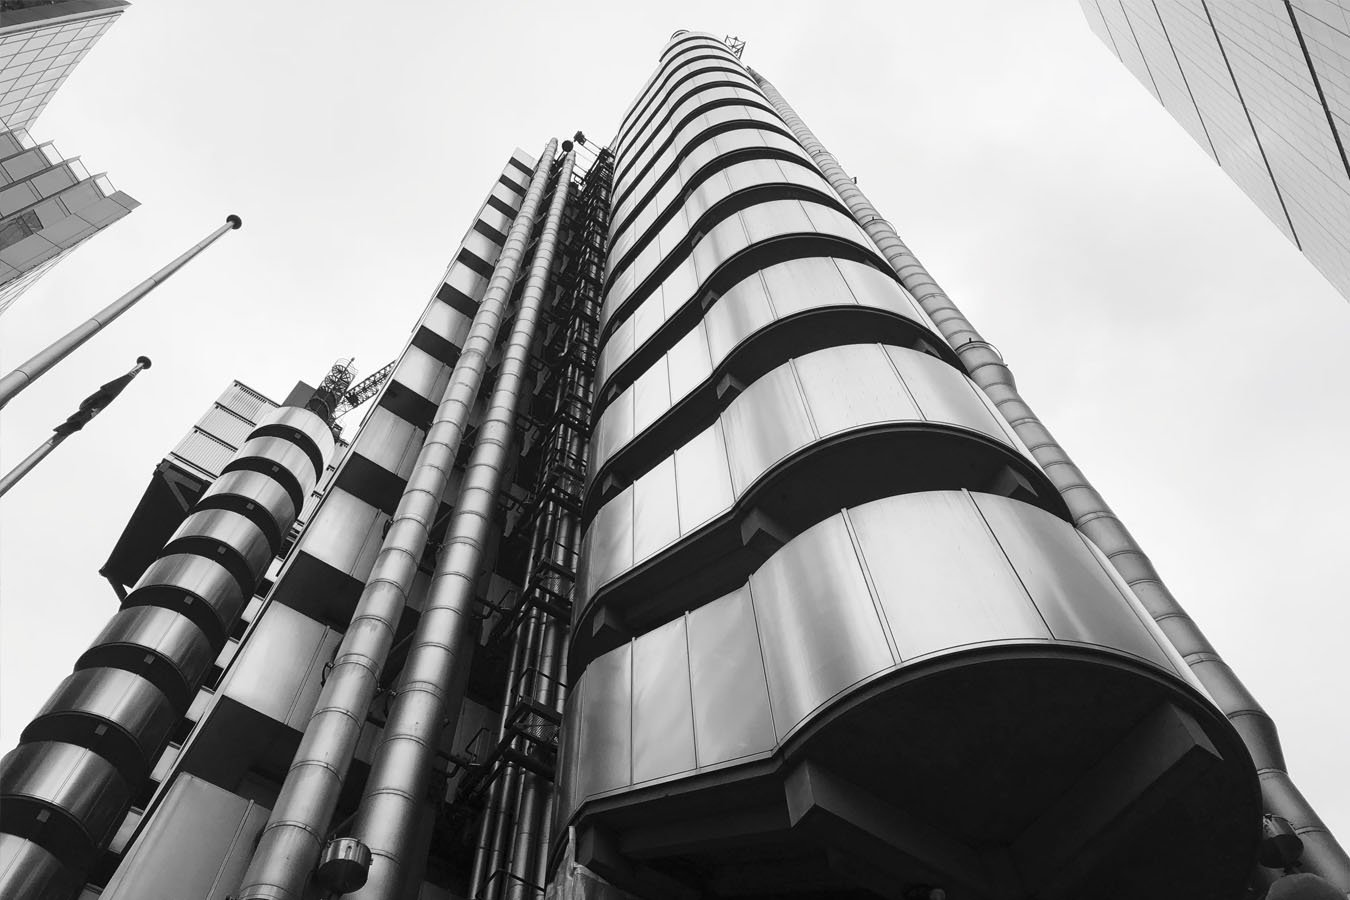 Black & White Architectural Photography